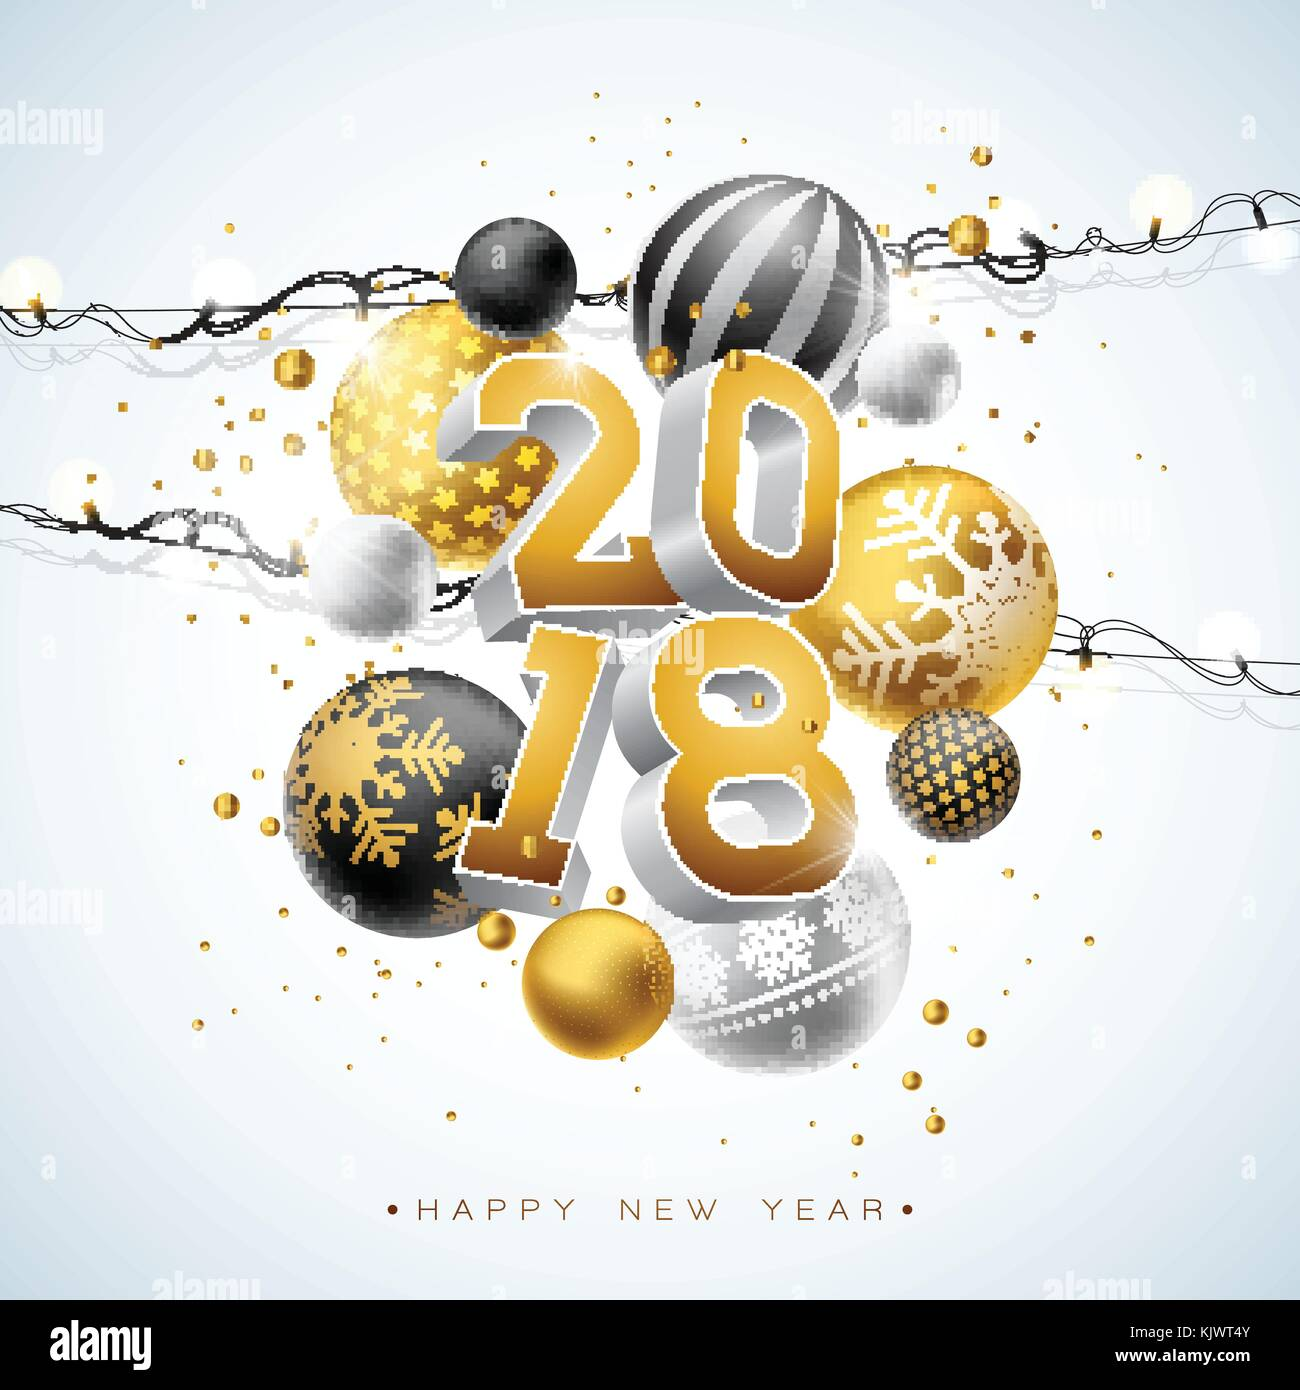 2018 happy new year illustration with gold 3d number light garland and ornamental ball on white background vector holiday design for premium greeting card